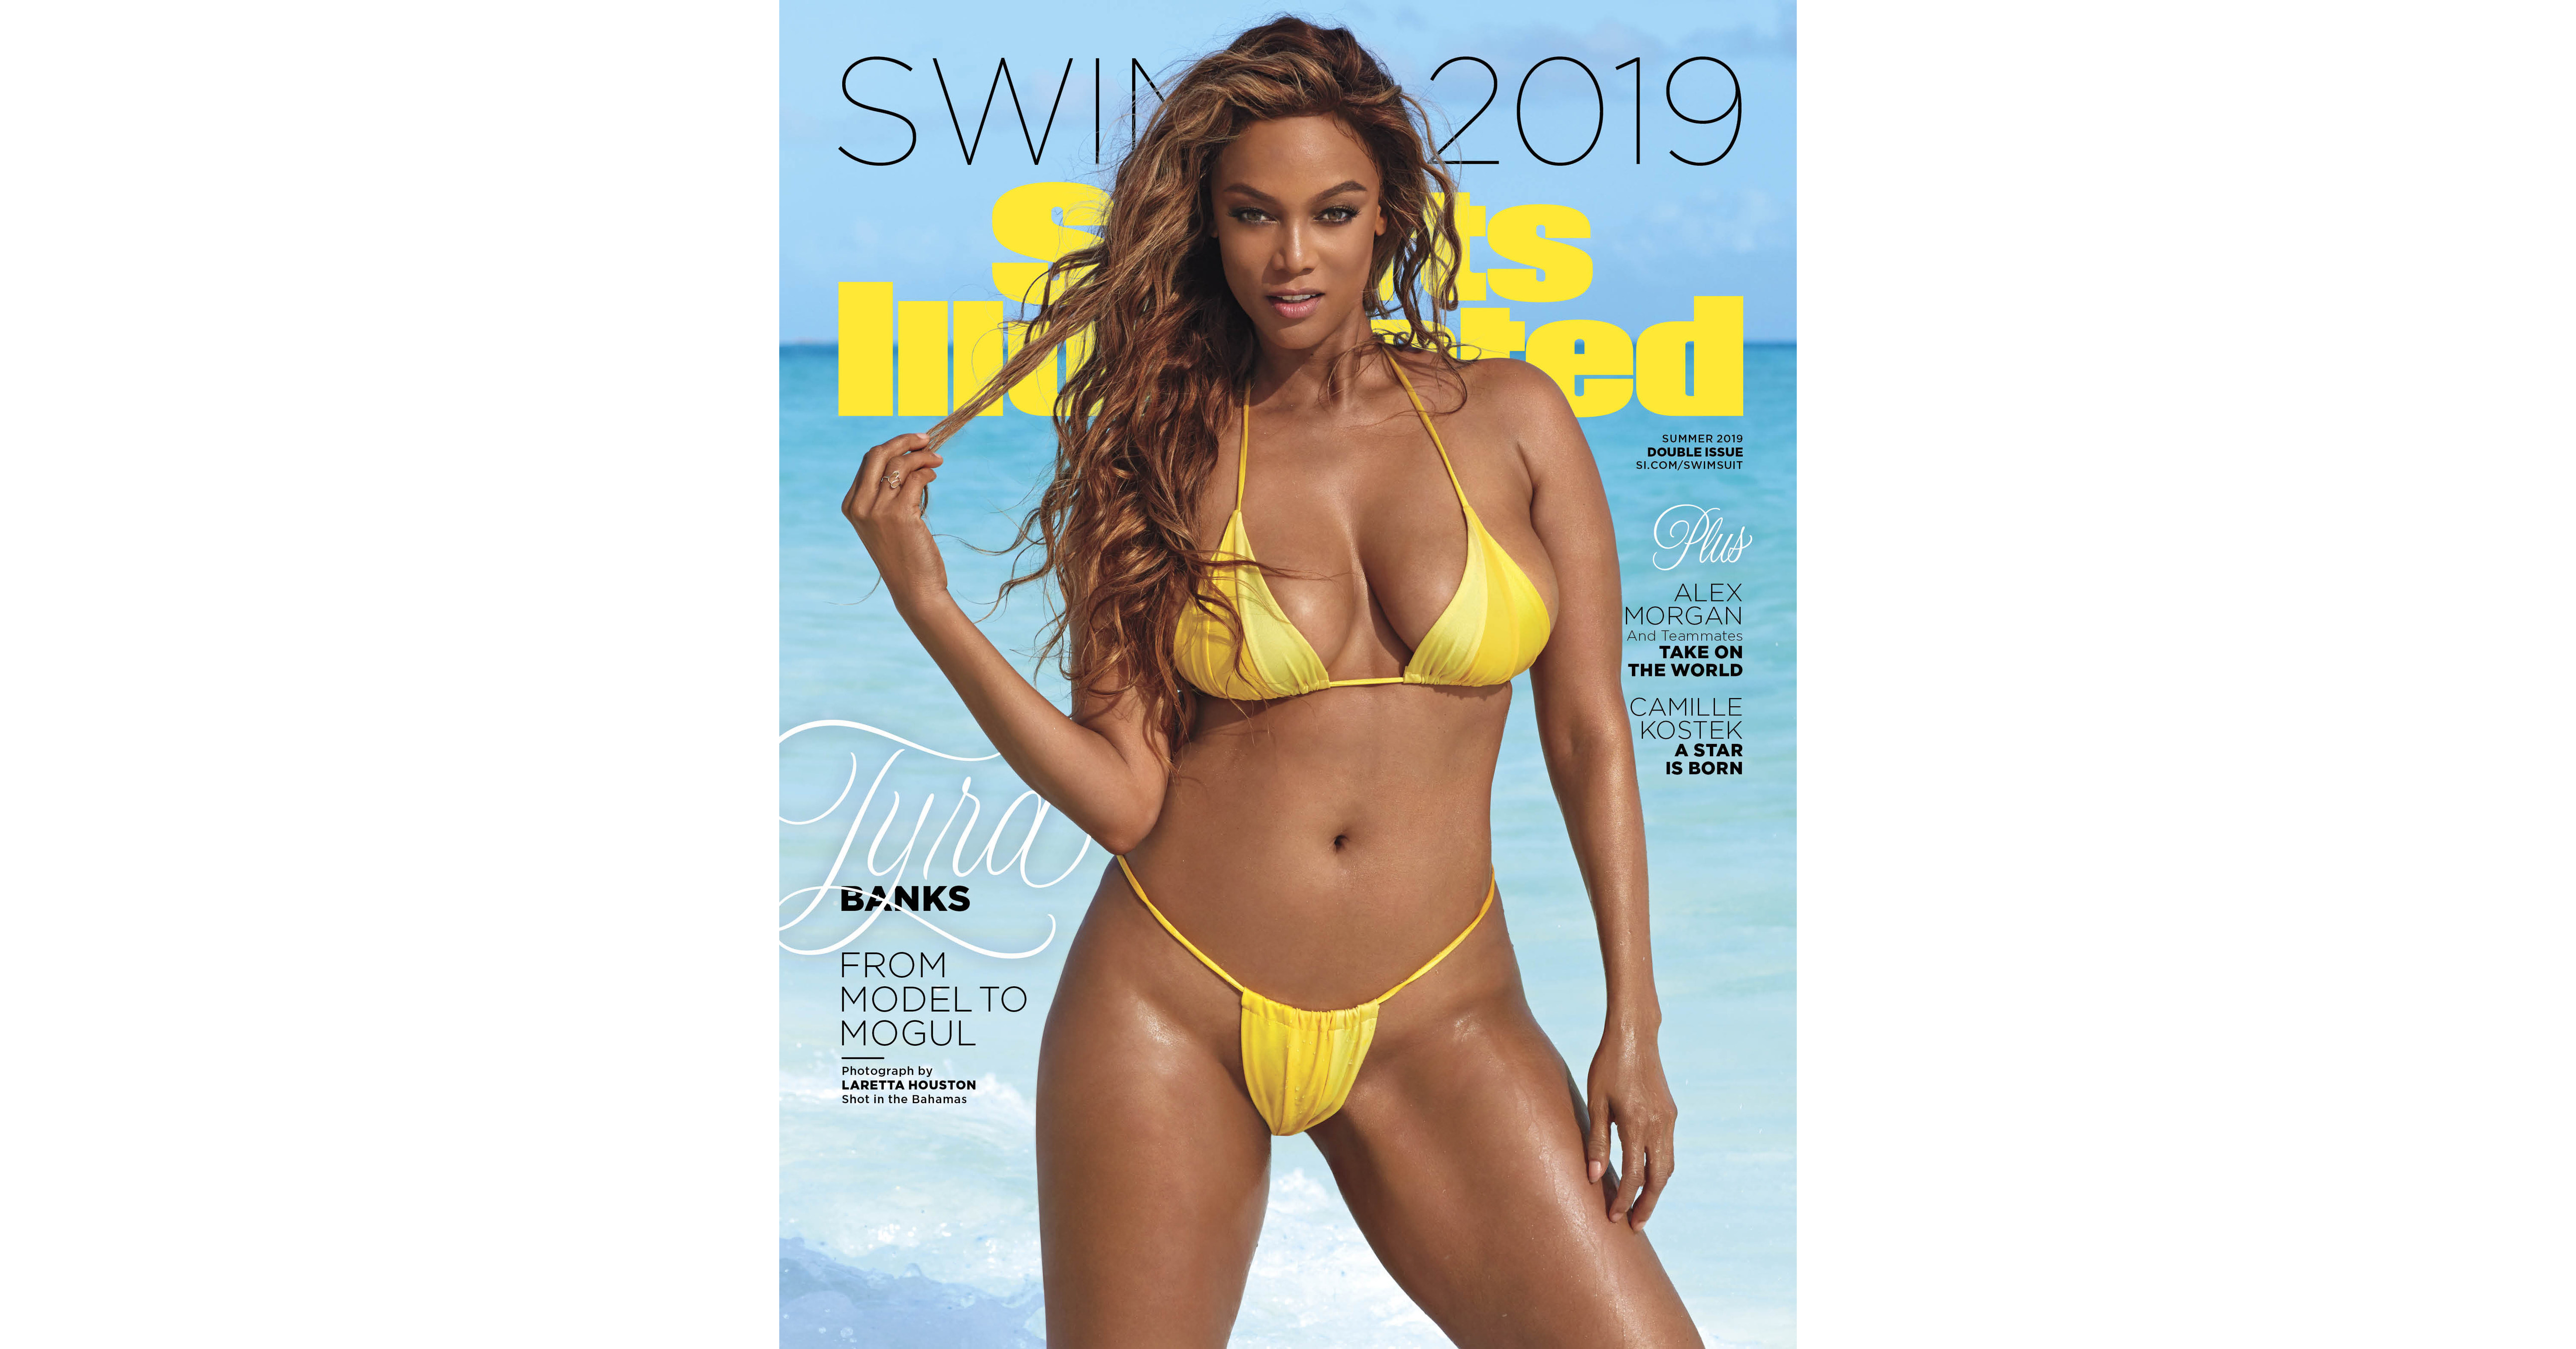 6cd7bd48049fc Tyra Banks, Alex Morgan And Camille Kostek Are Revealed As Sports  Illustrated Swimsuit's 2019 Cover Models; Each Get Their Own Cover